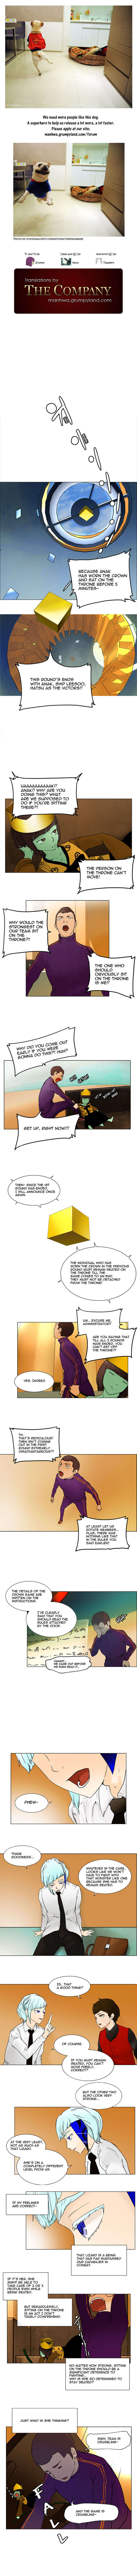 Tower of God 16 Page 1